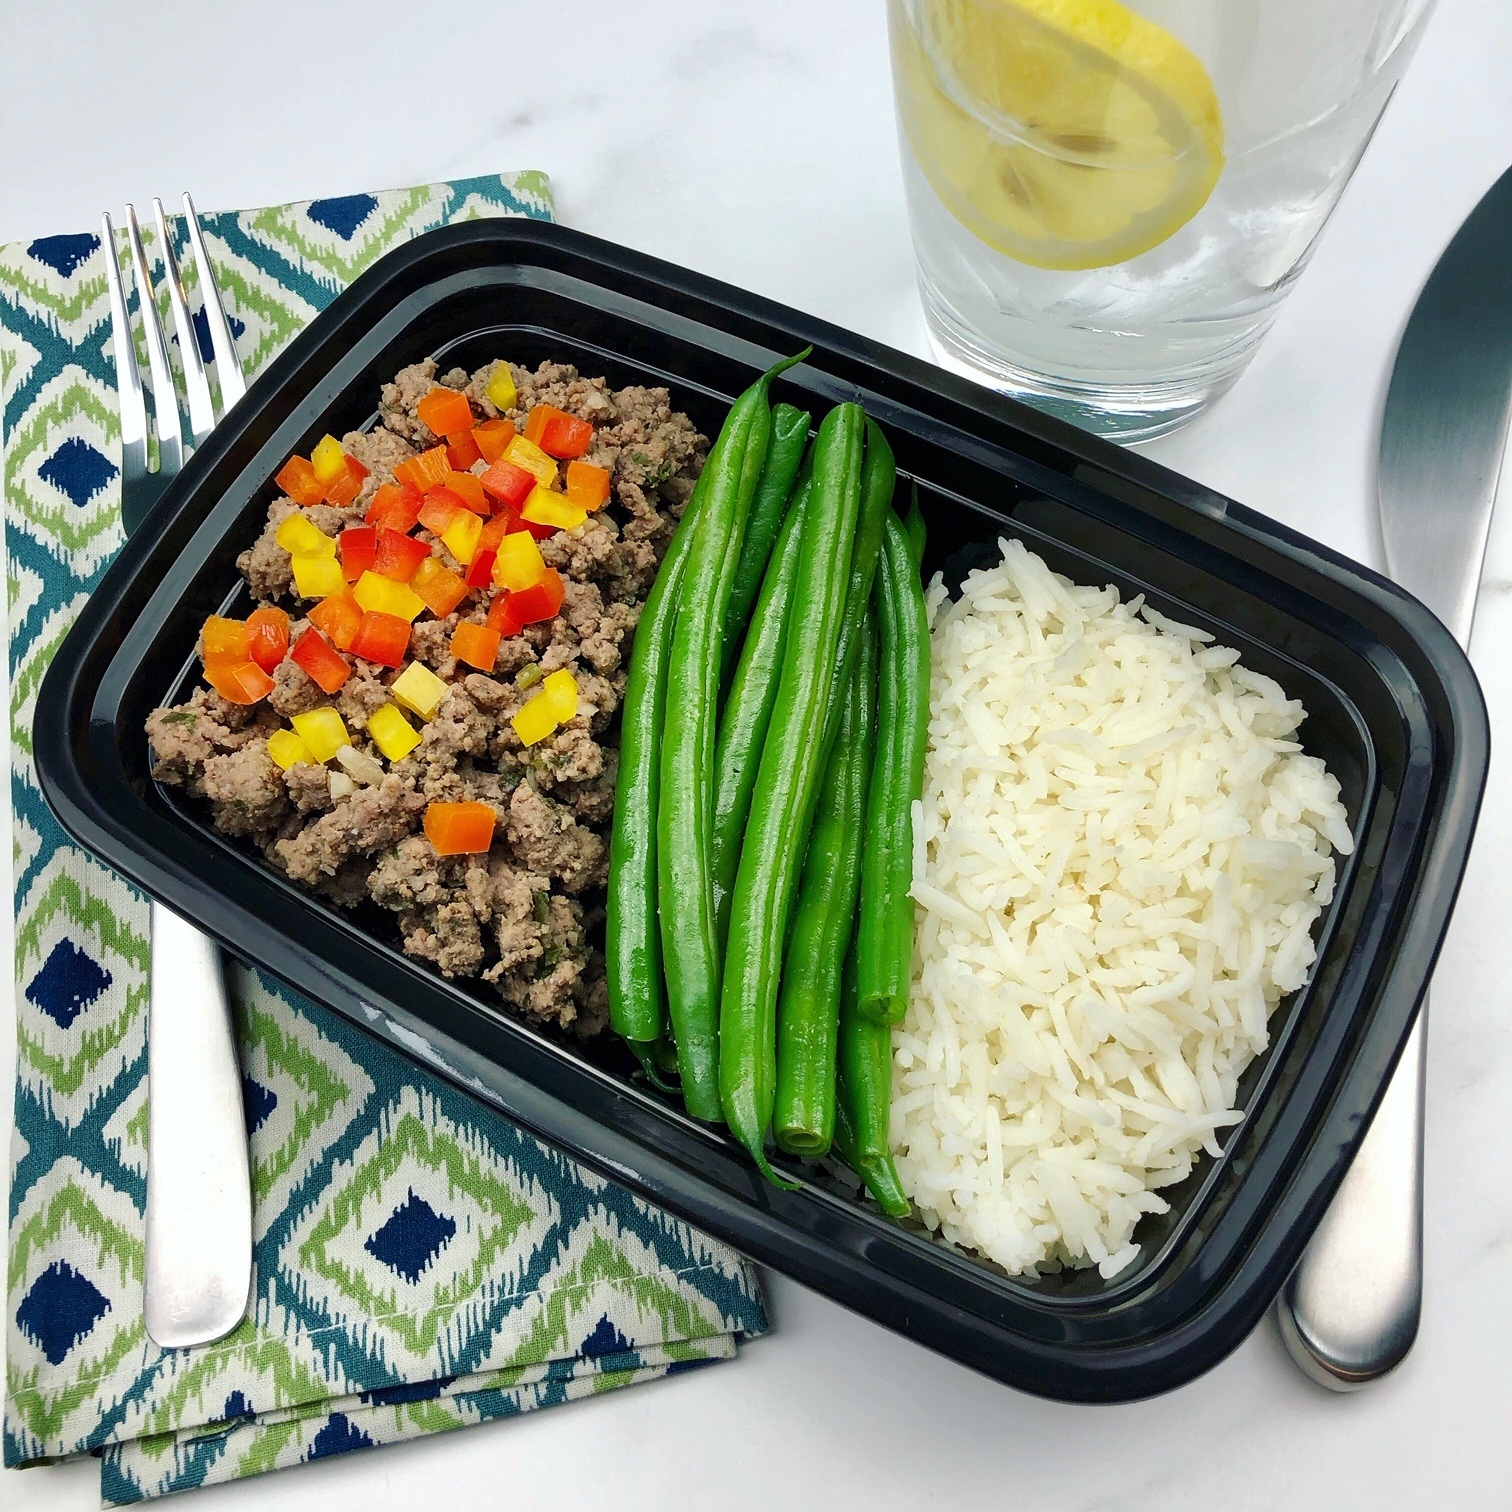 Meal Ideas For Ground Beef: Ground Beef, Green Beans, White Basmati Rice » The